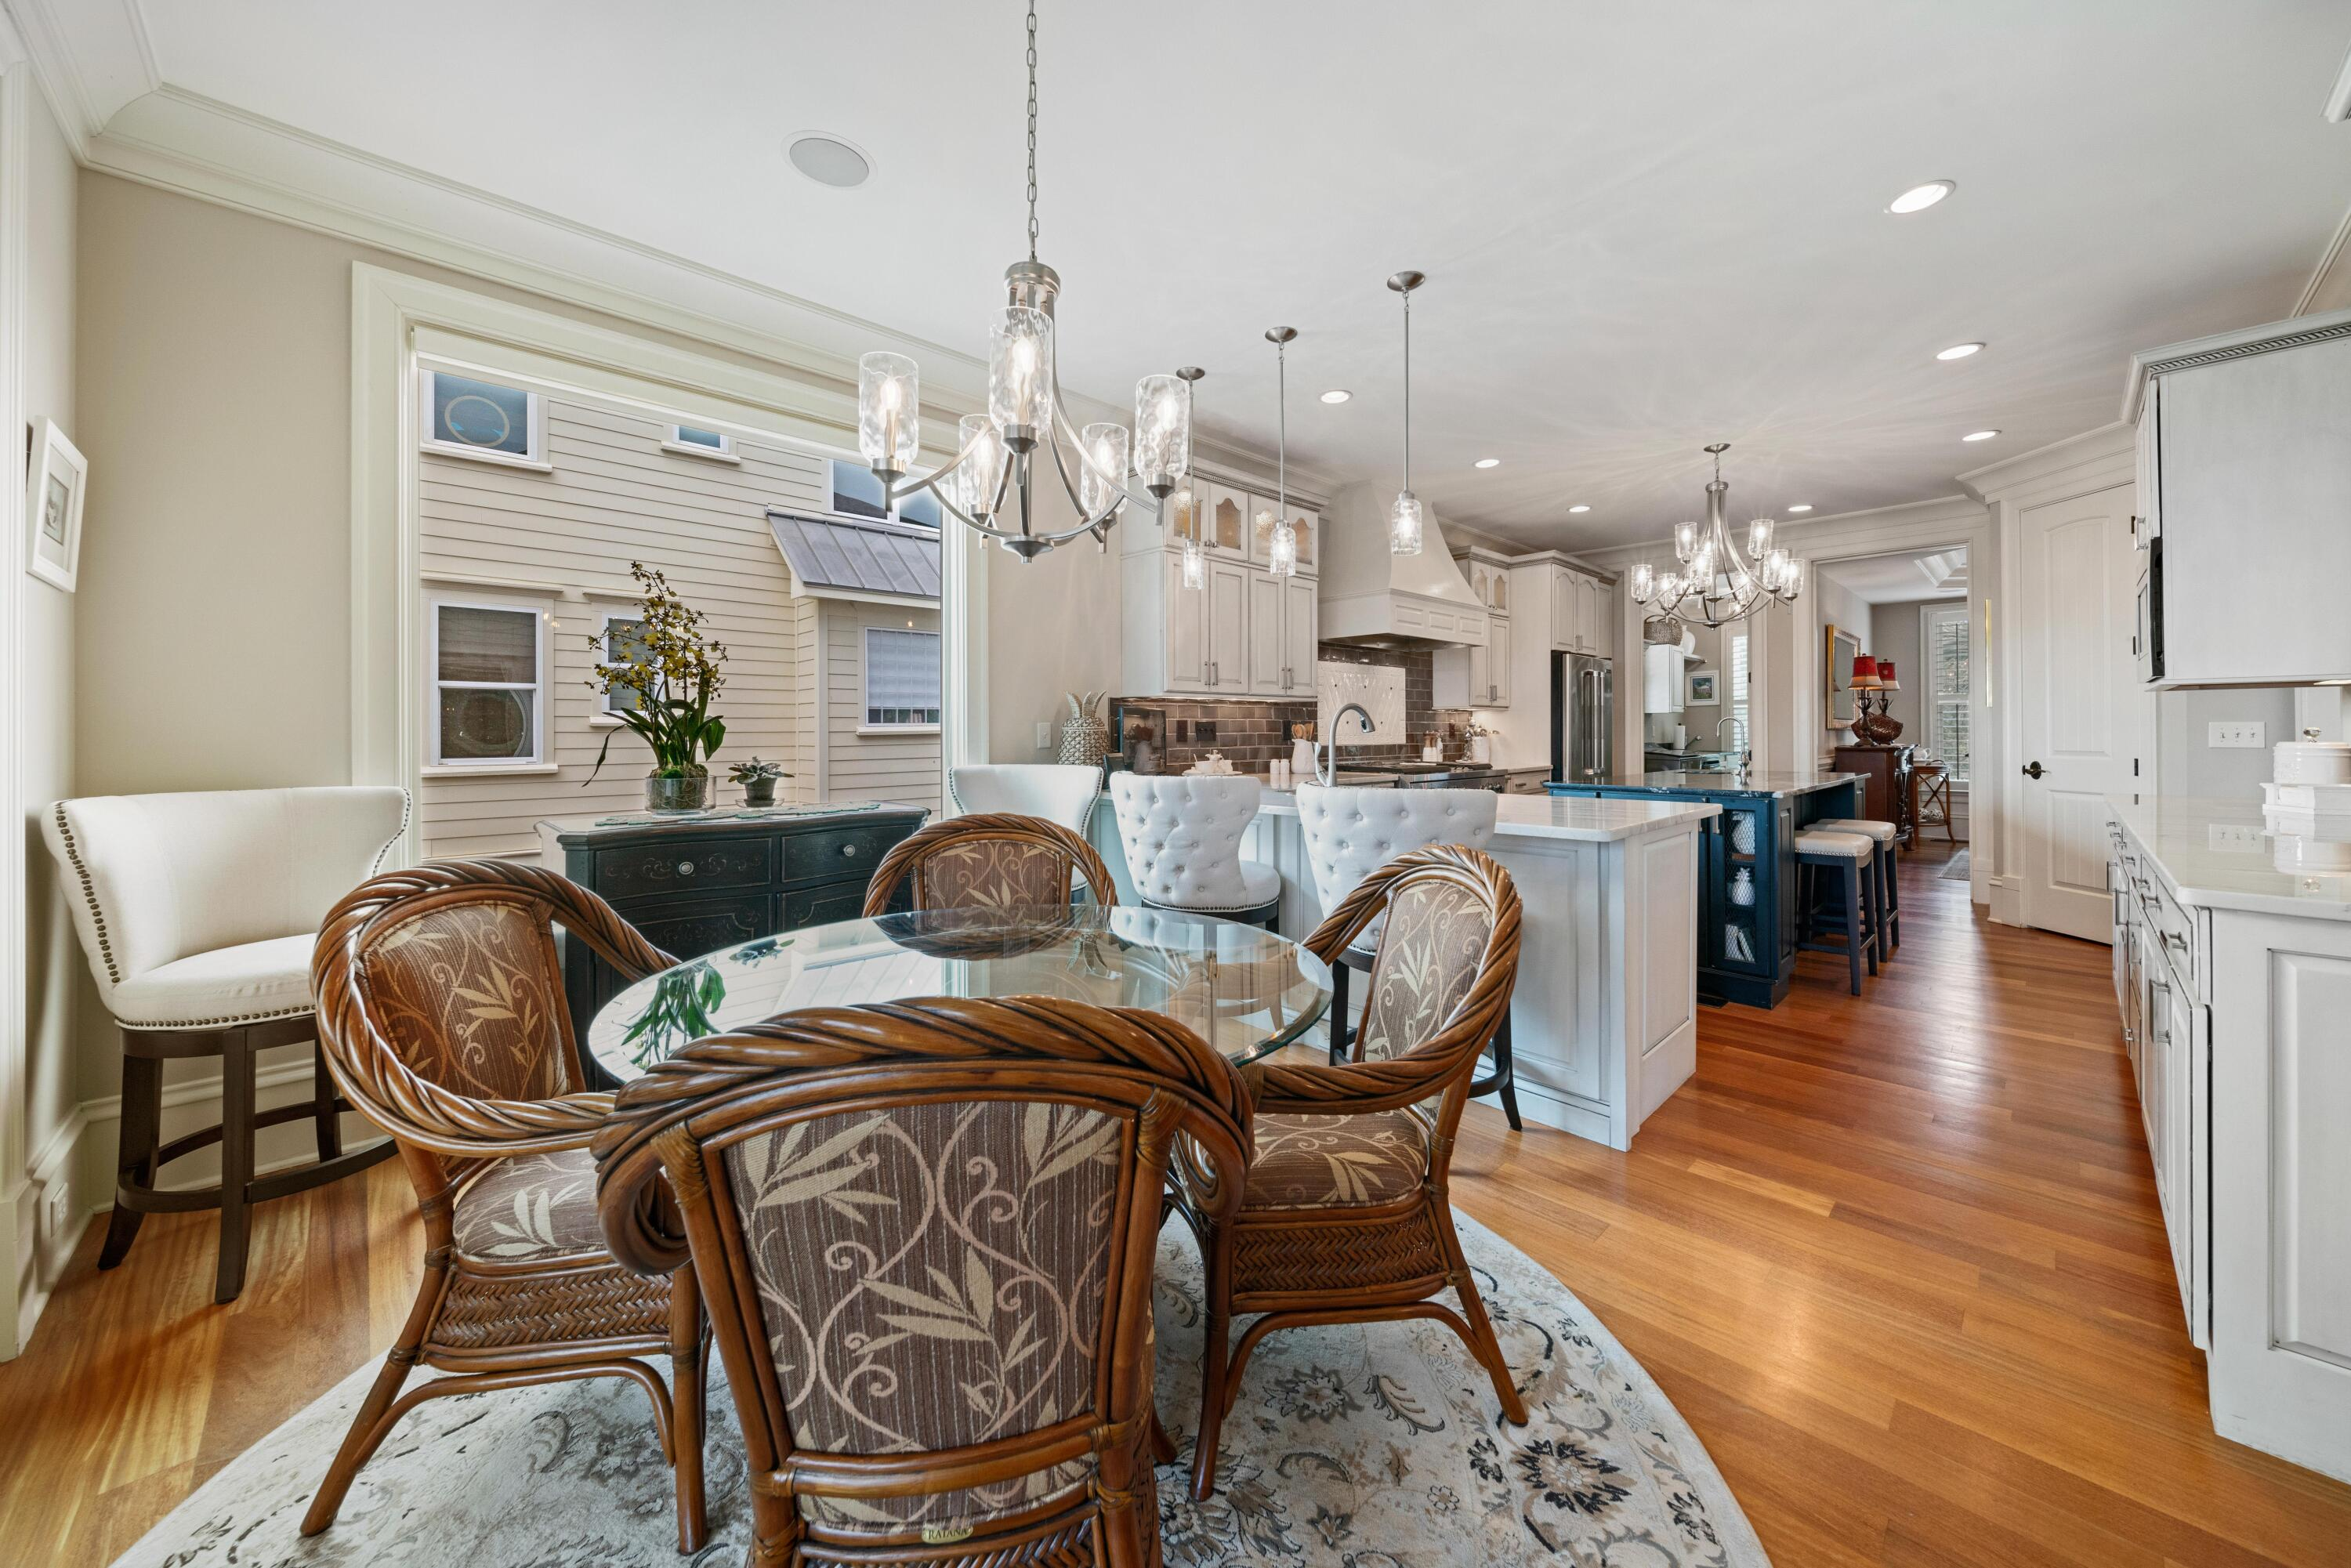 Rivertowne Country Club Homes For Sale - 1652 Rivertowne Country Club, Mount Pleasant, SC - 47